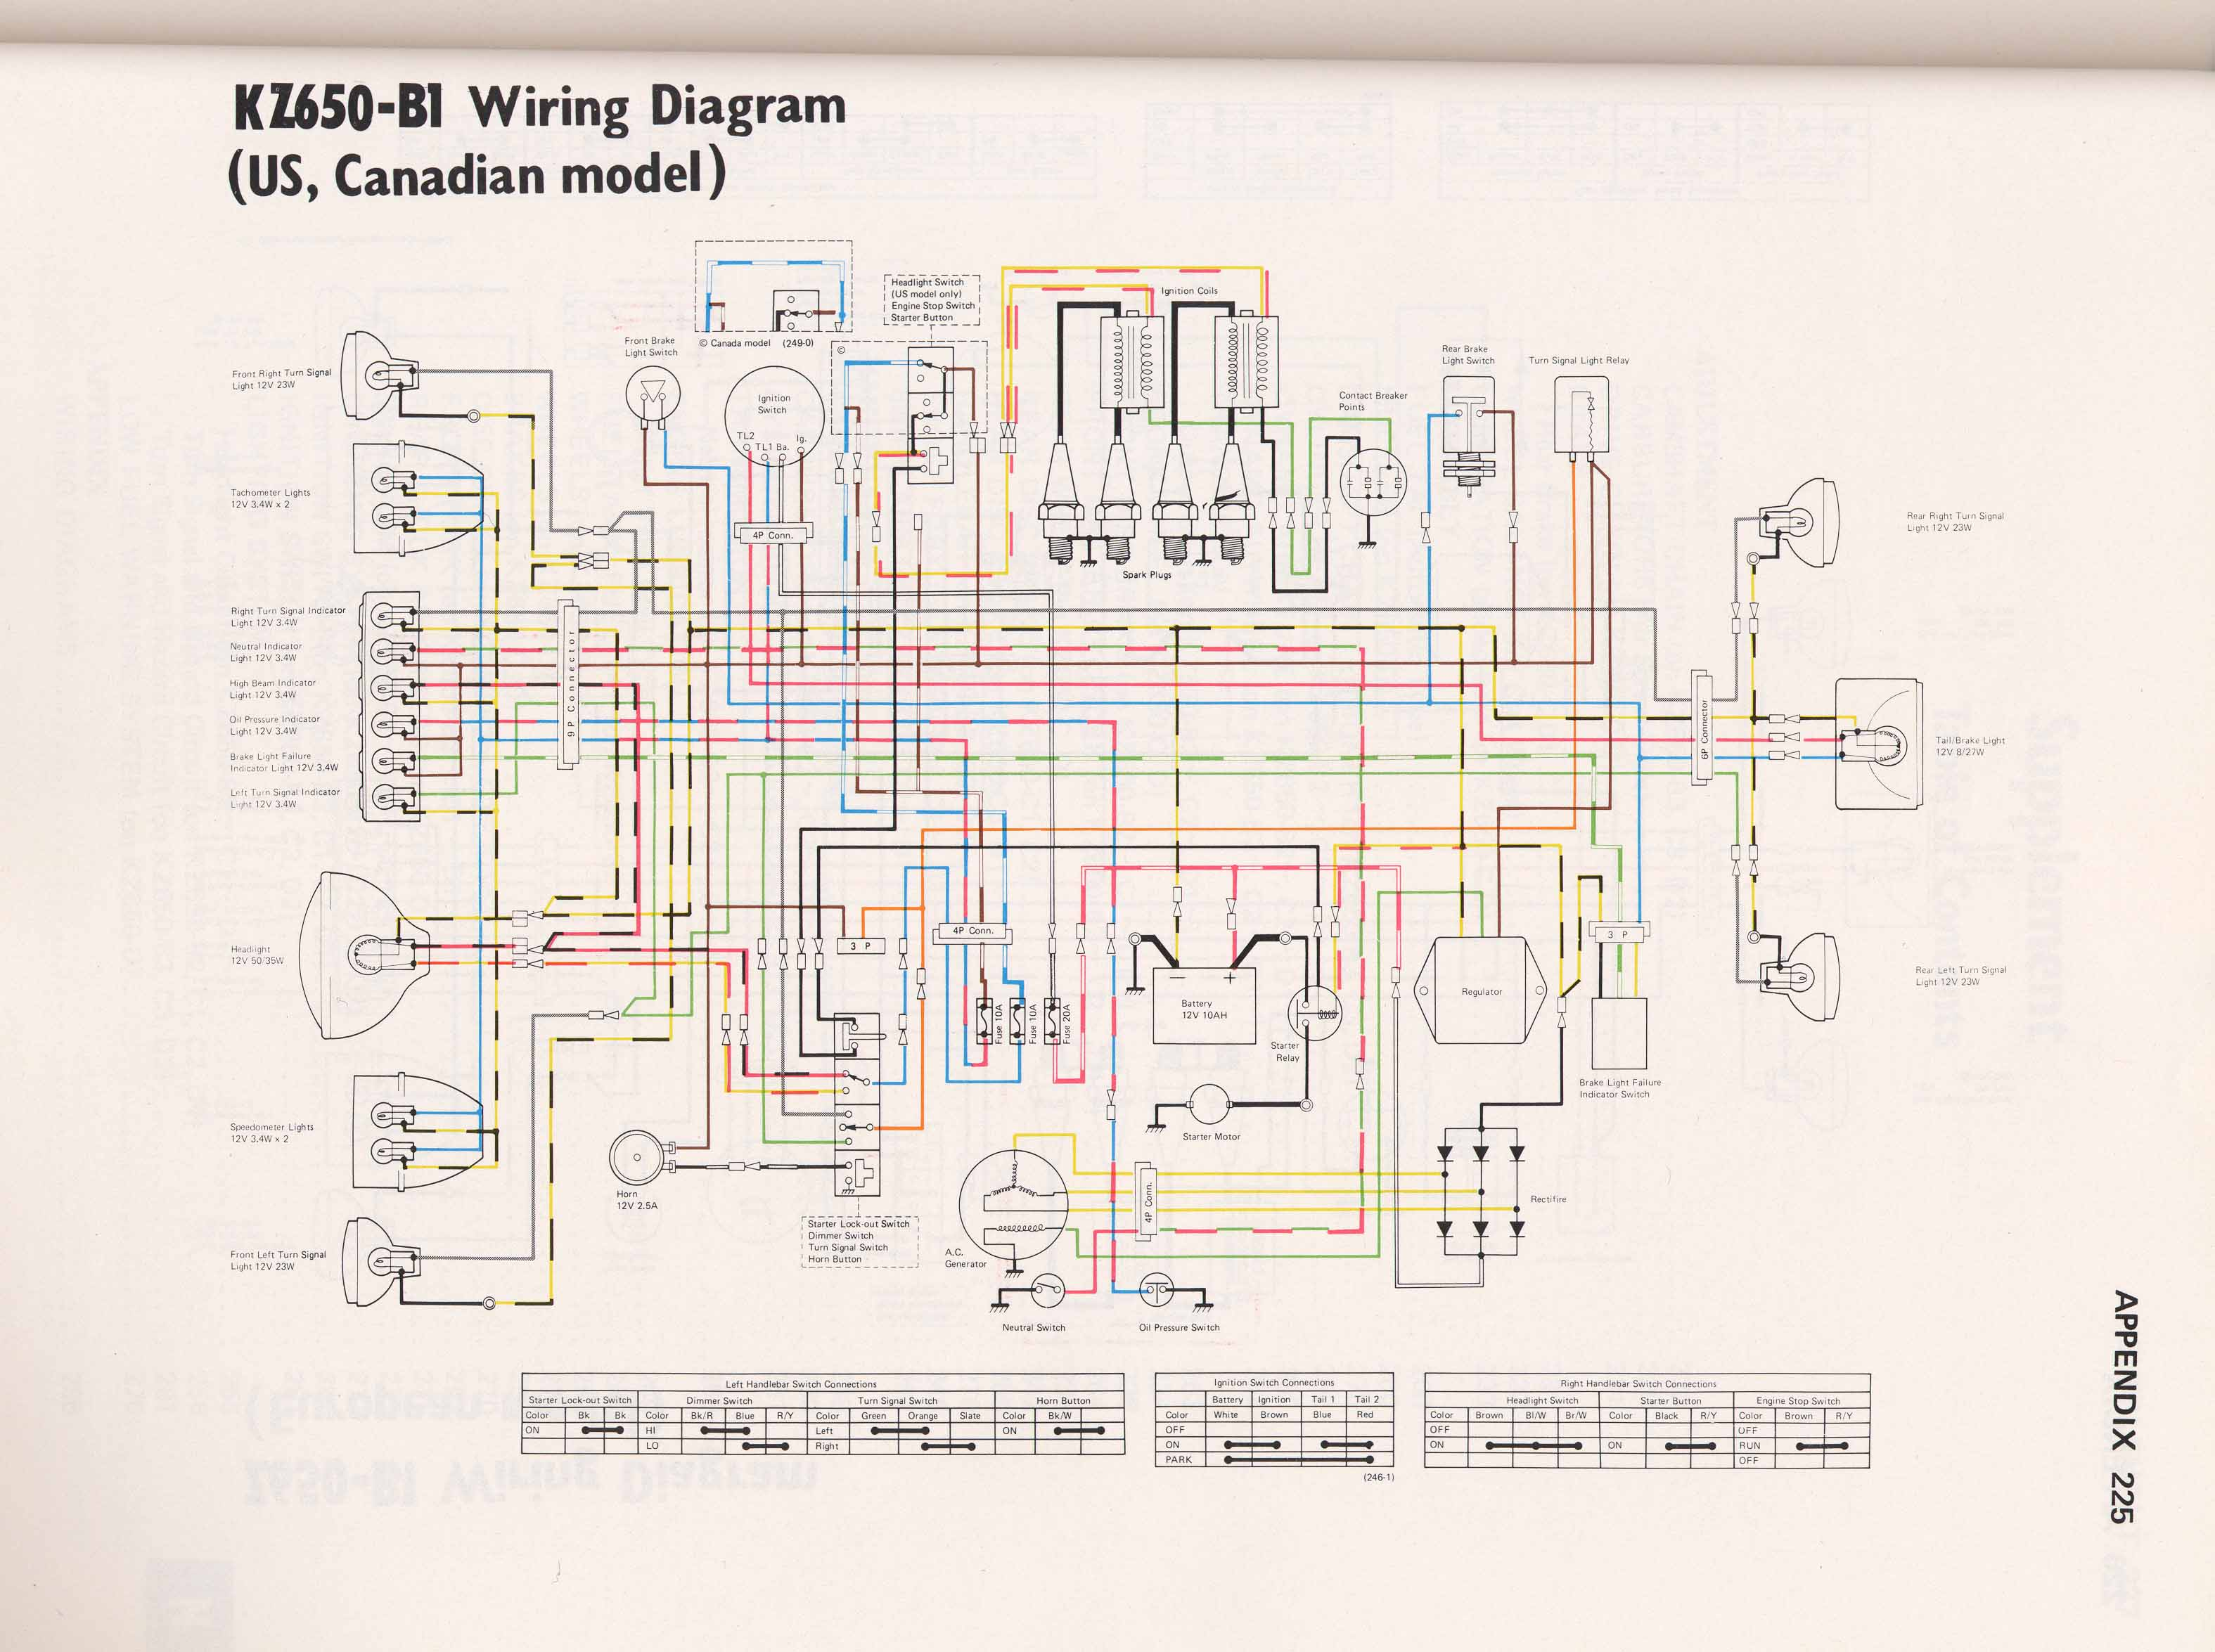 T 56 Transmission Parts Diagram Trusted Wiring Diagrams T56 Harness 1977 Kz650 B1 Loom Kit